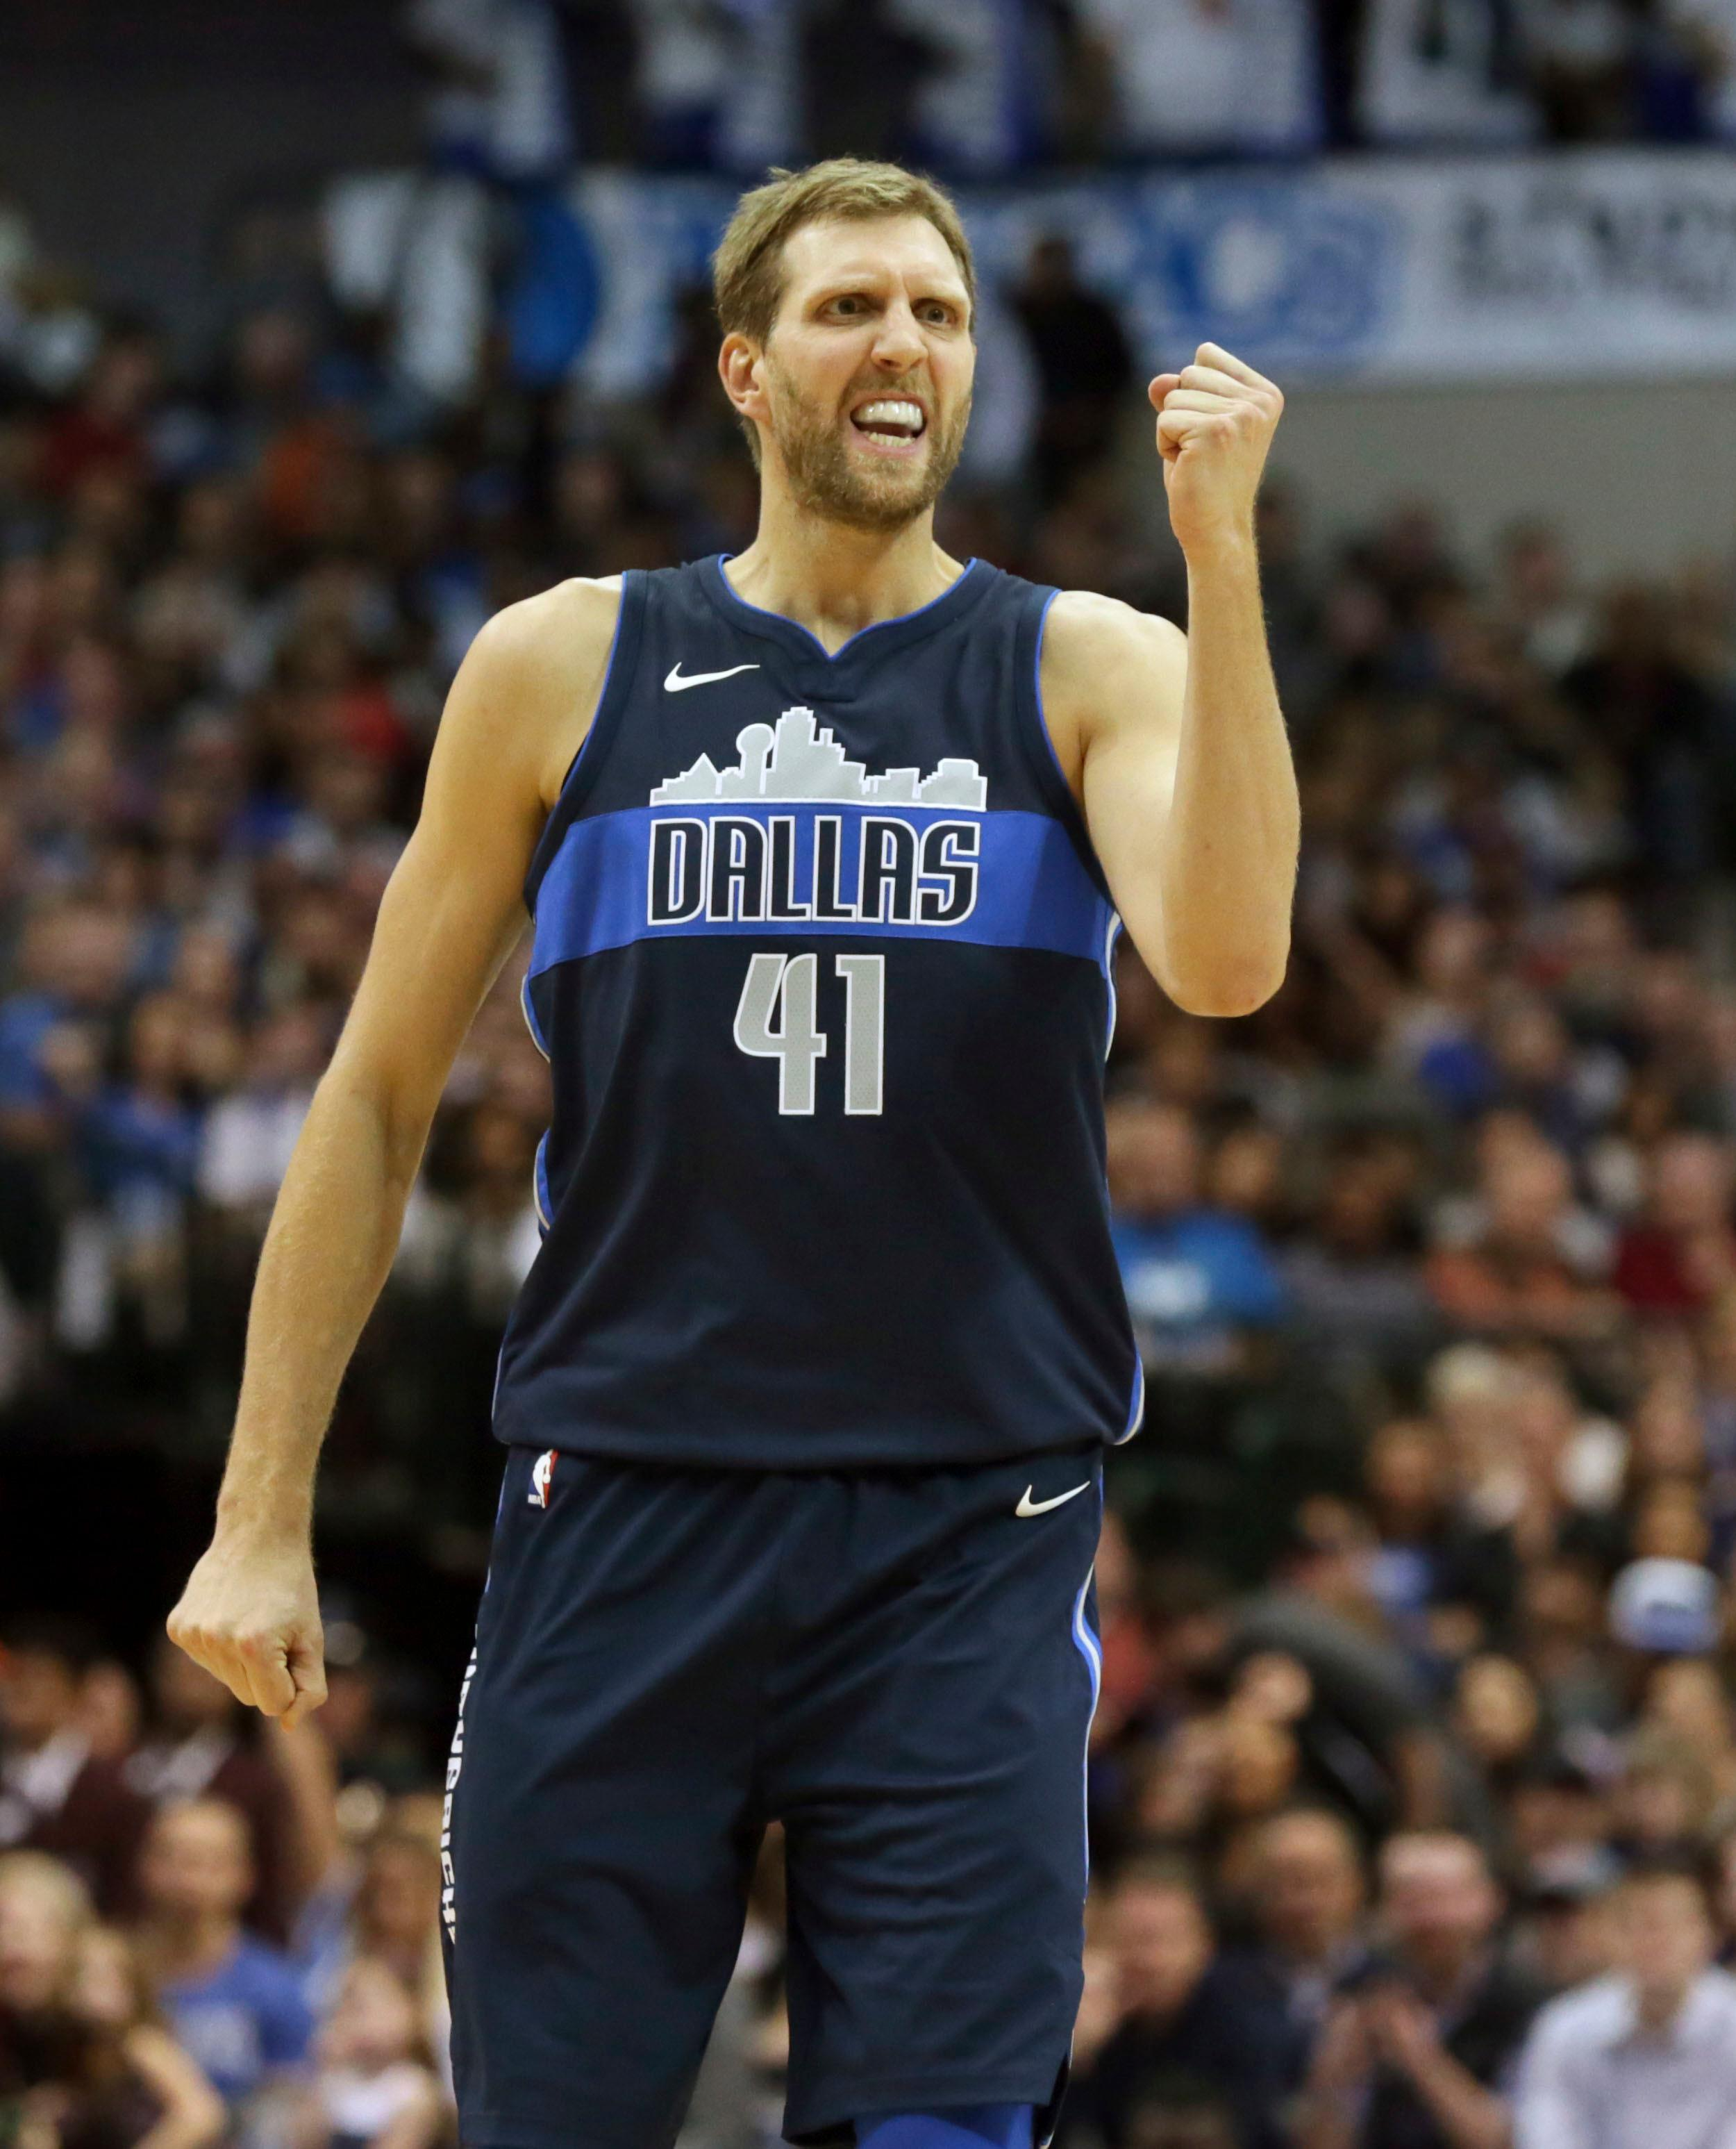 Dallas Mavericks forward Dirk Nowitzki (41), of Germany, reacts to a play during the second half of an NBA basketball game against the Oklahoma City Thunder in Dallas, Saturday, Nov. 25, 2017. (AP Photo/LM Otero)